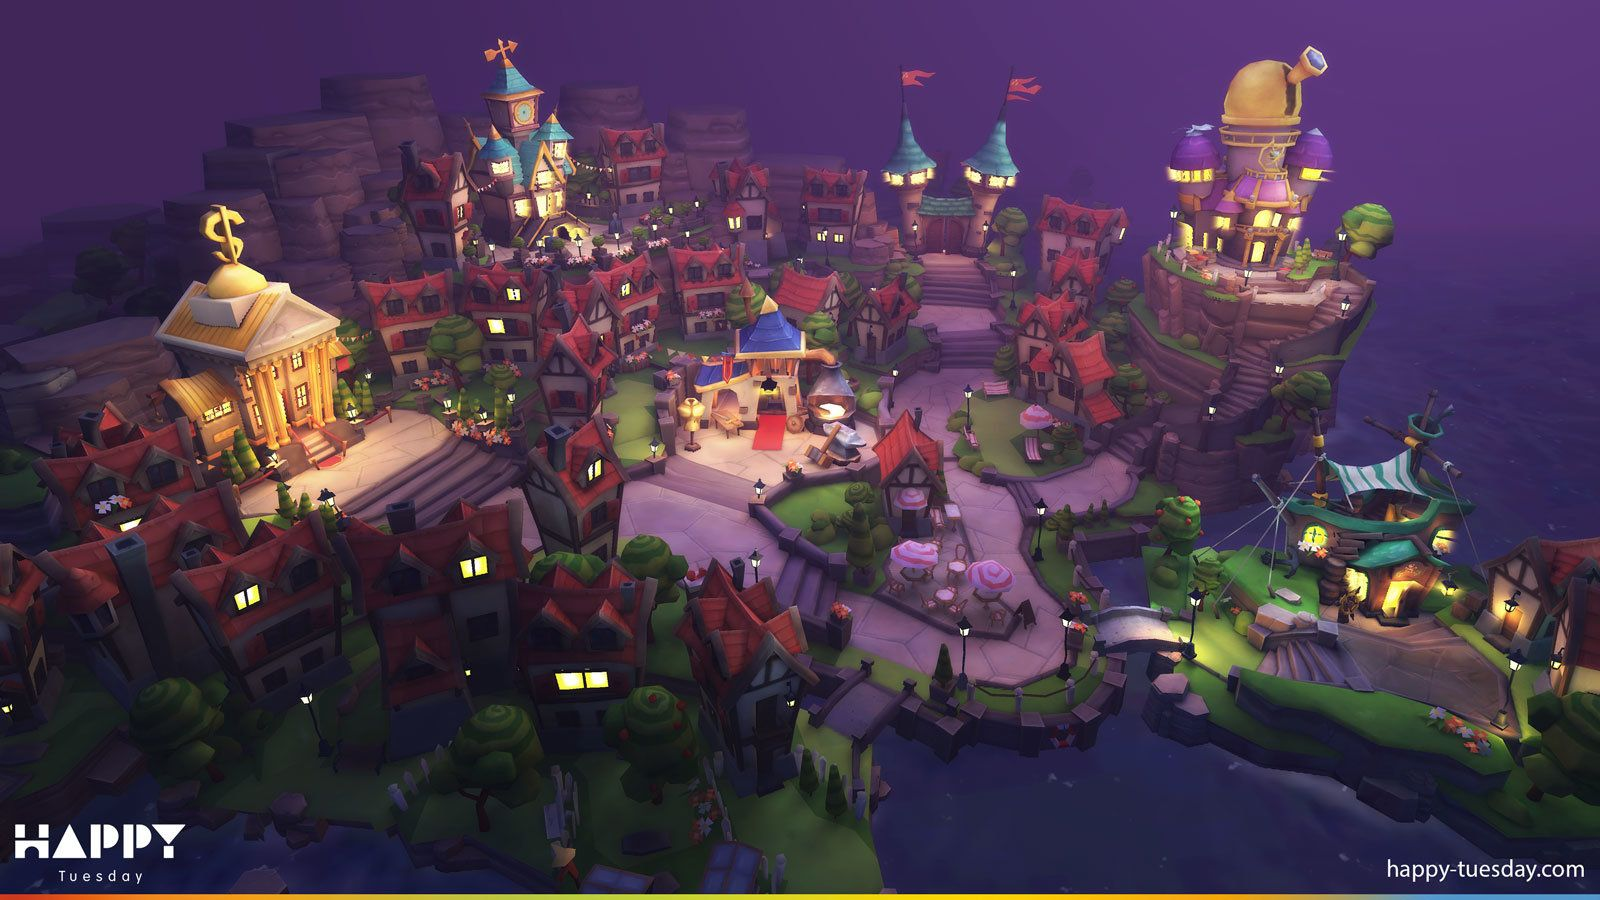 3d House Wallpaper Room Village For Haunted Island Mobile Happy Tuesday On